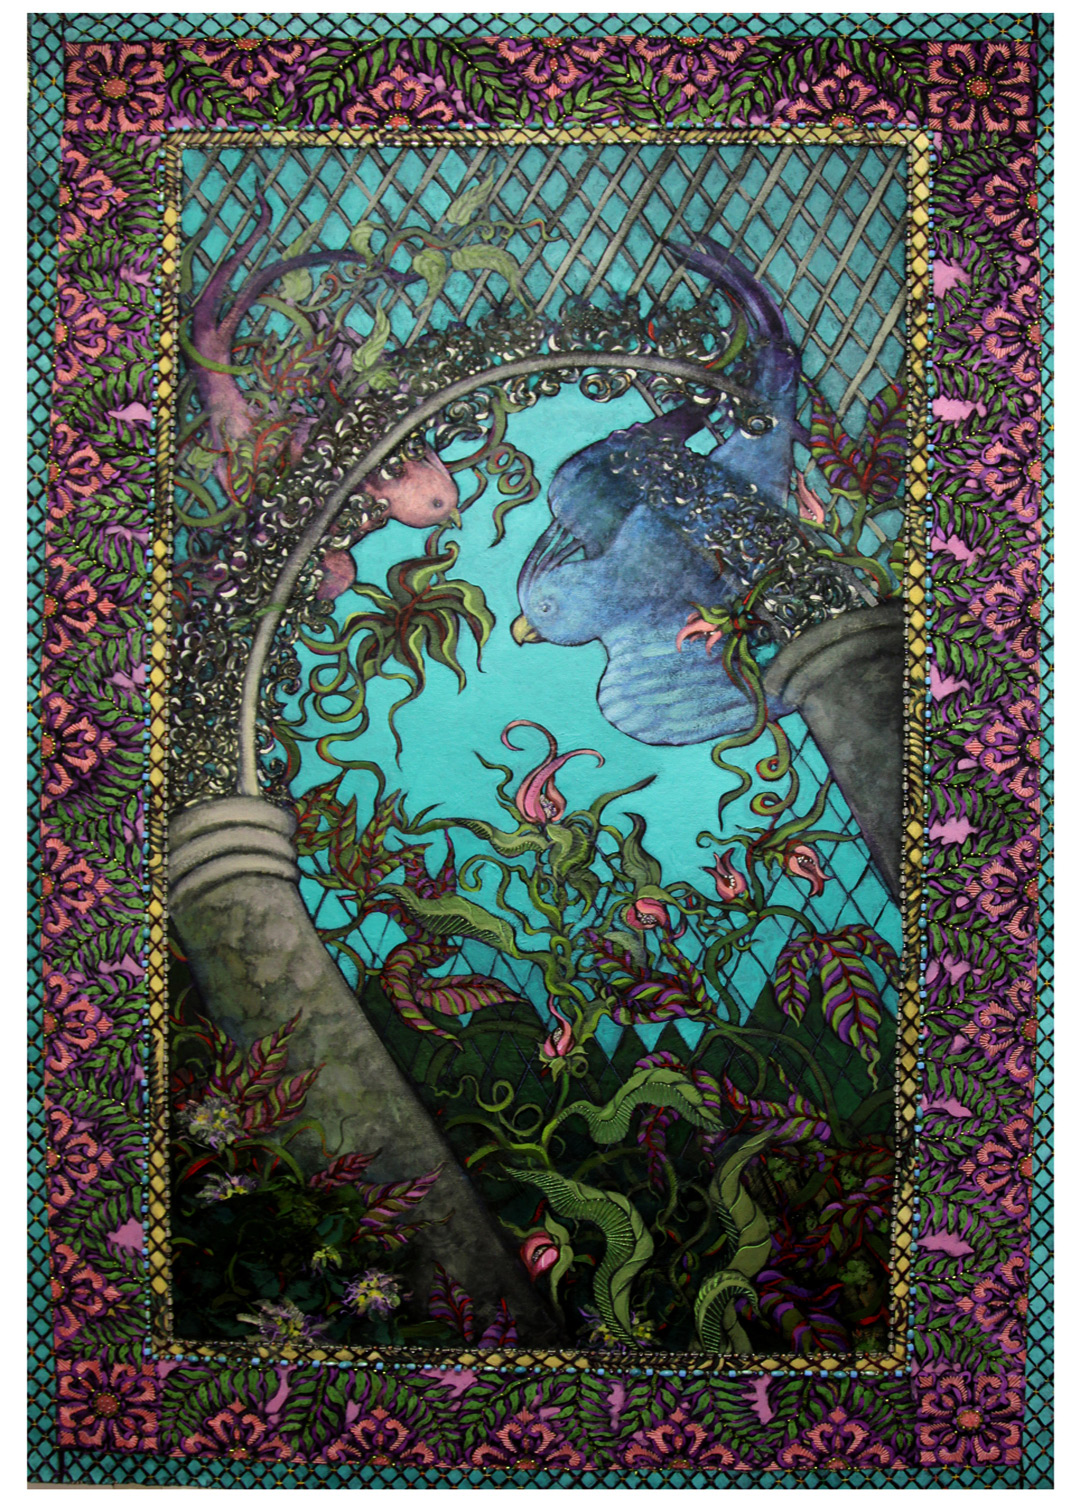 affinity-83-50-inches-canvas-paint-embroidery-beading-by-suzanne-klotz_1500px.jpg